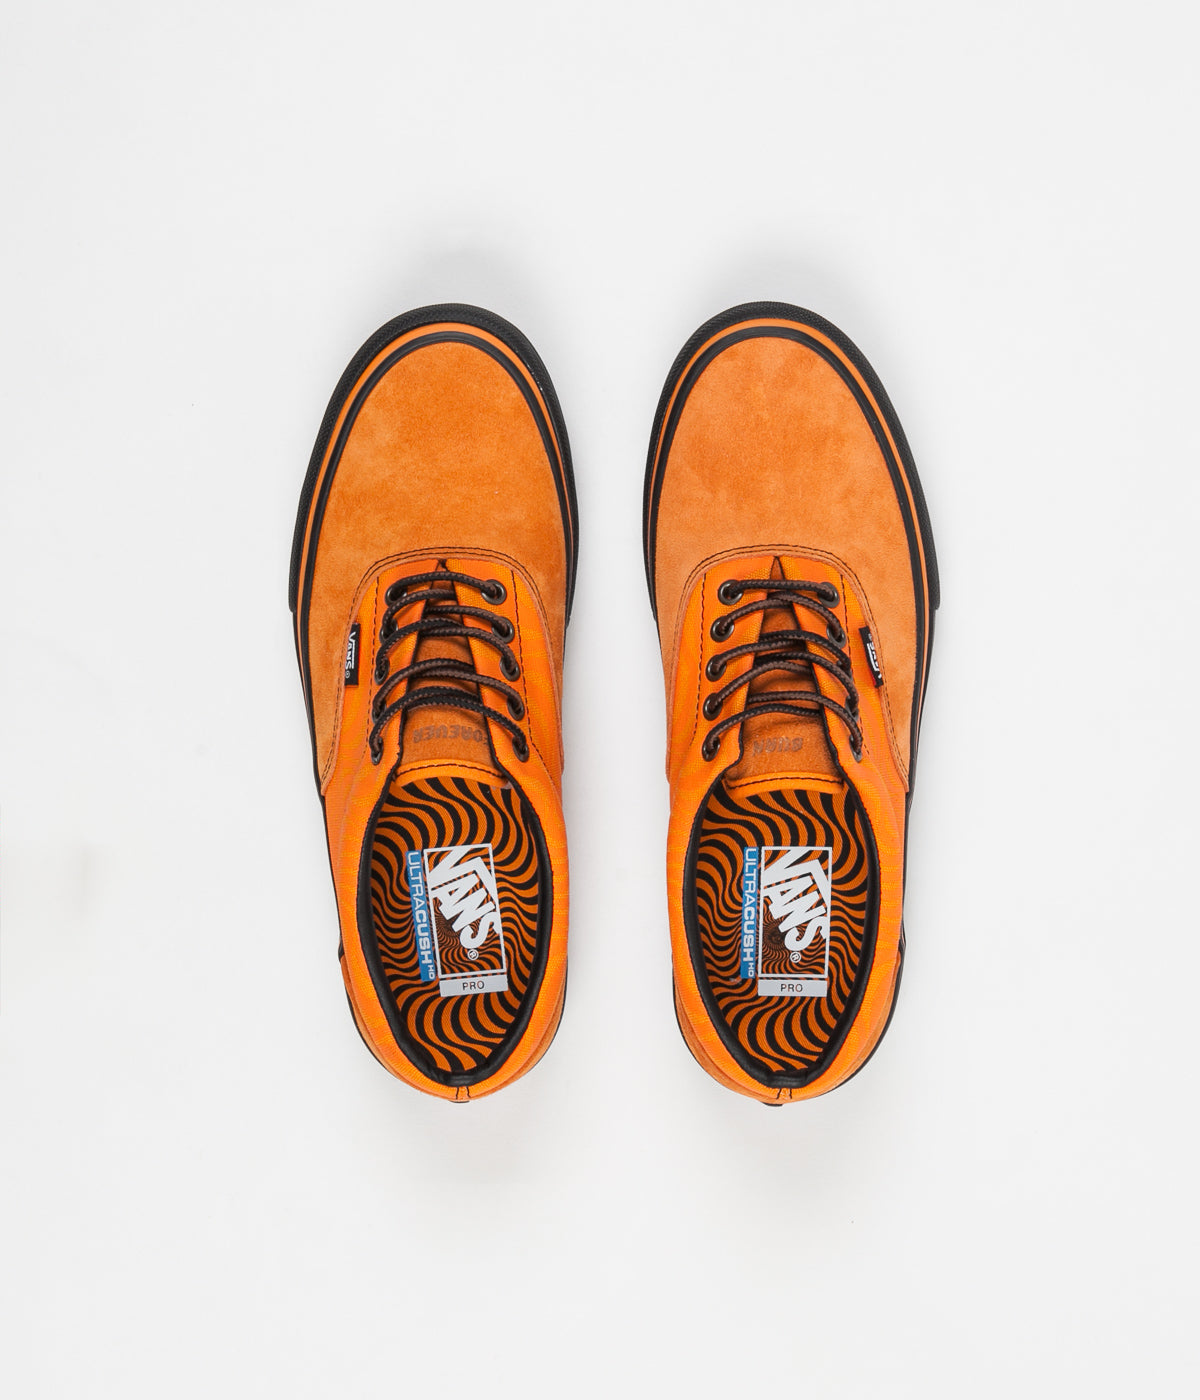 34a53f4f8e6269 Vans x Spitfire Era Pro Shoes - Cardiel   Orange ...